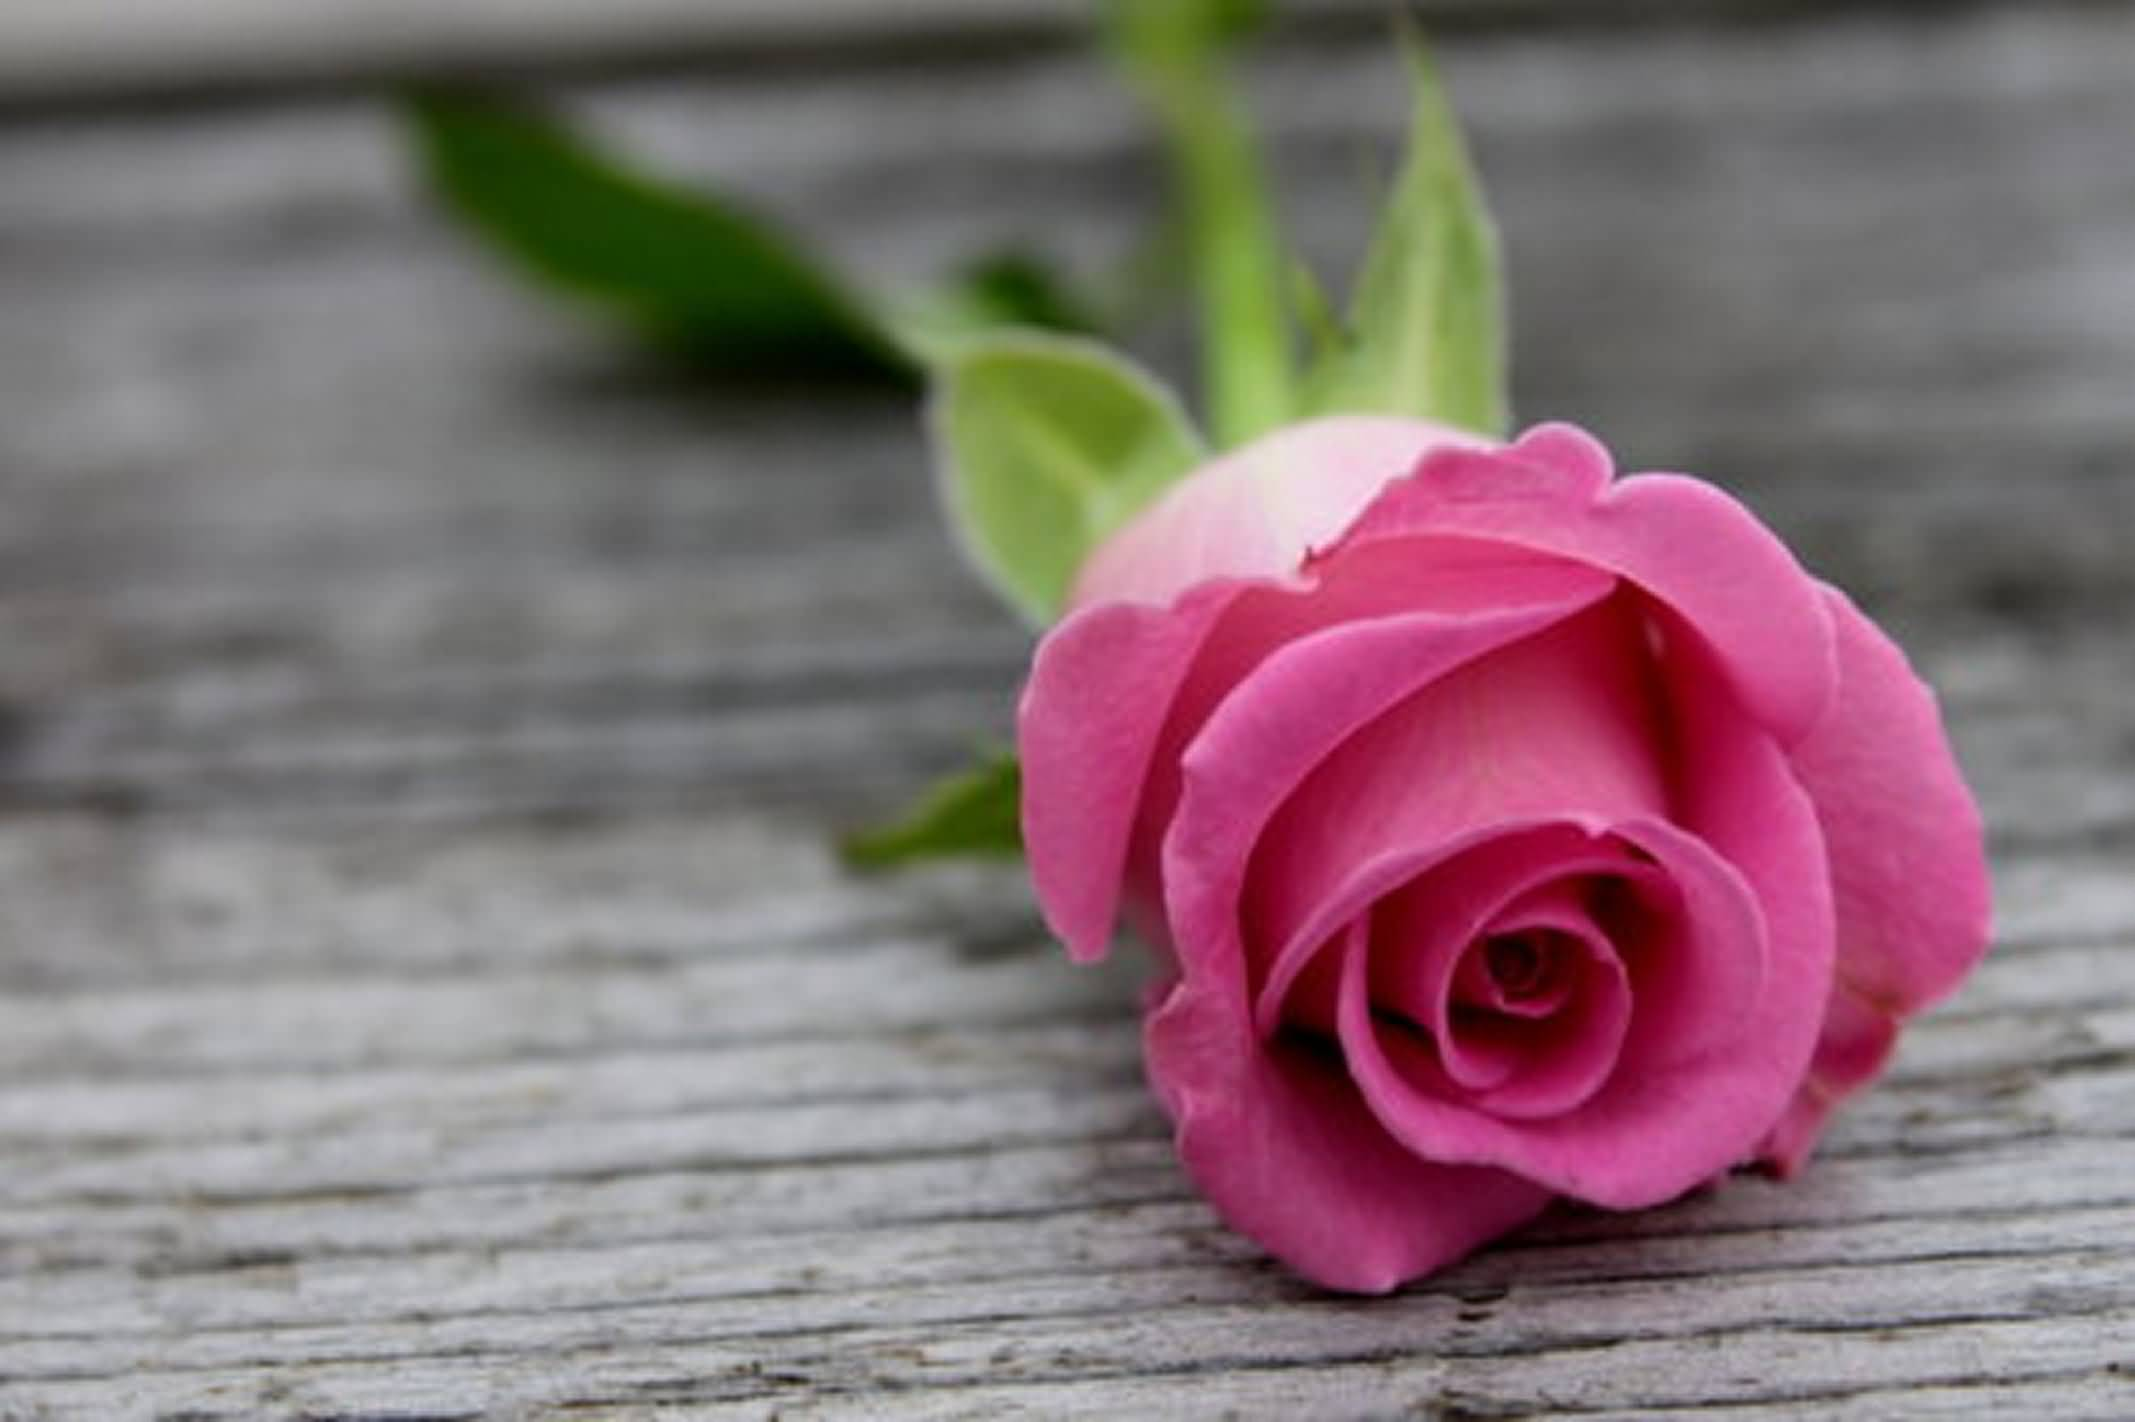 beautiful pink rose flower wallpaper free wallpaper download 2135x1422